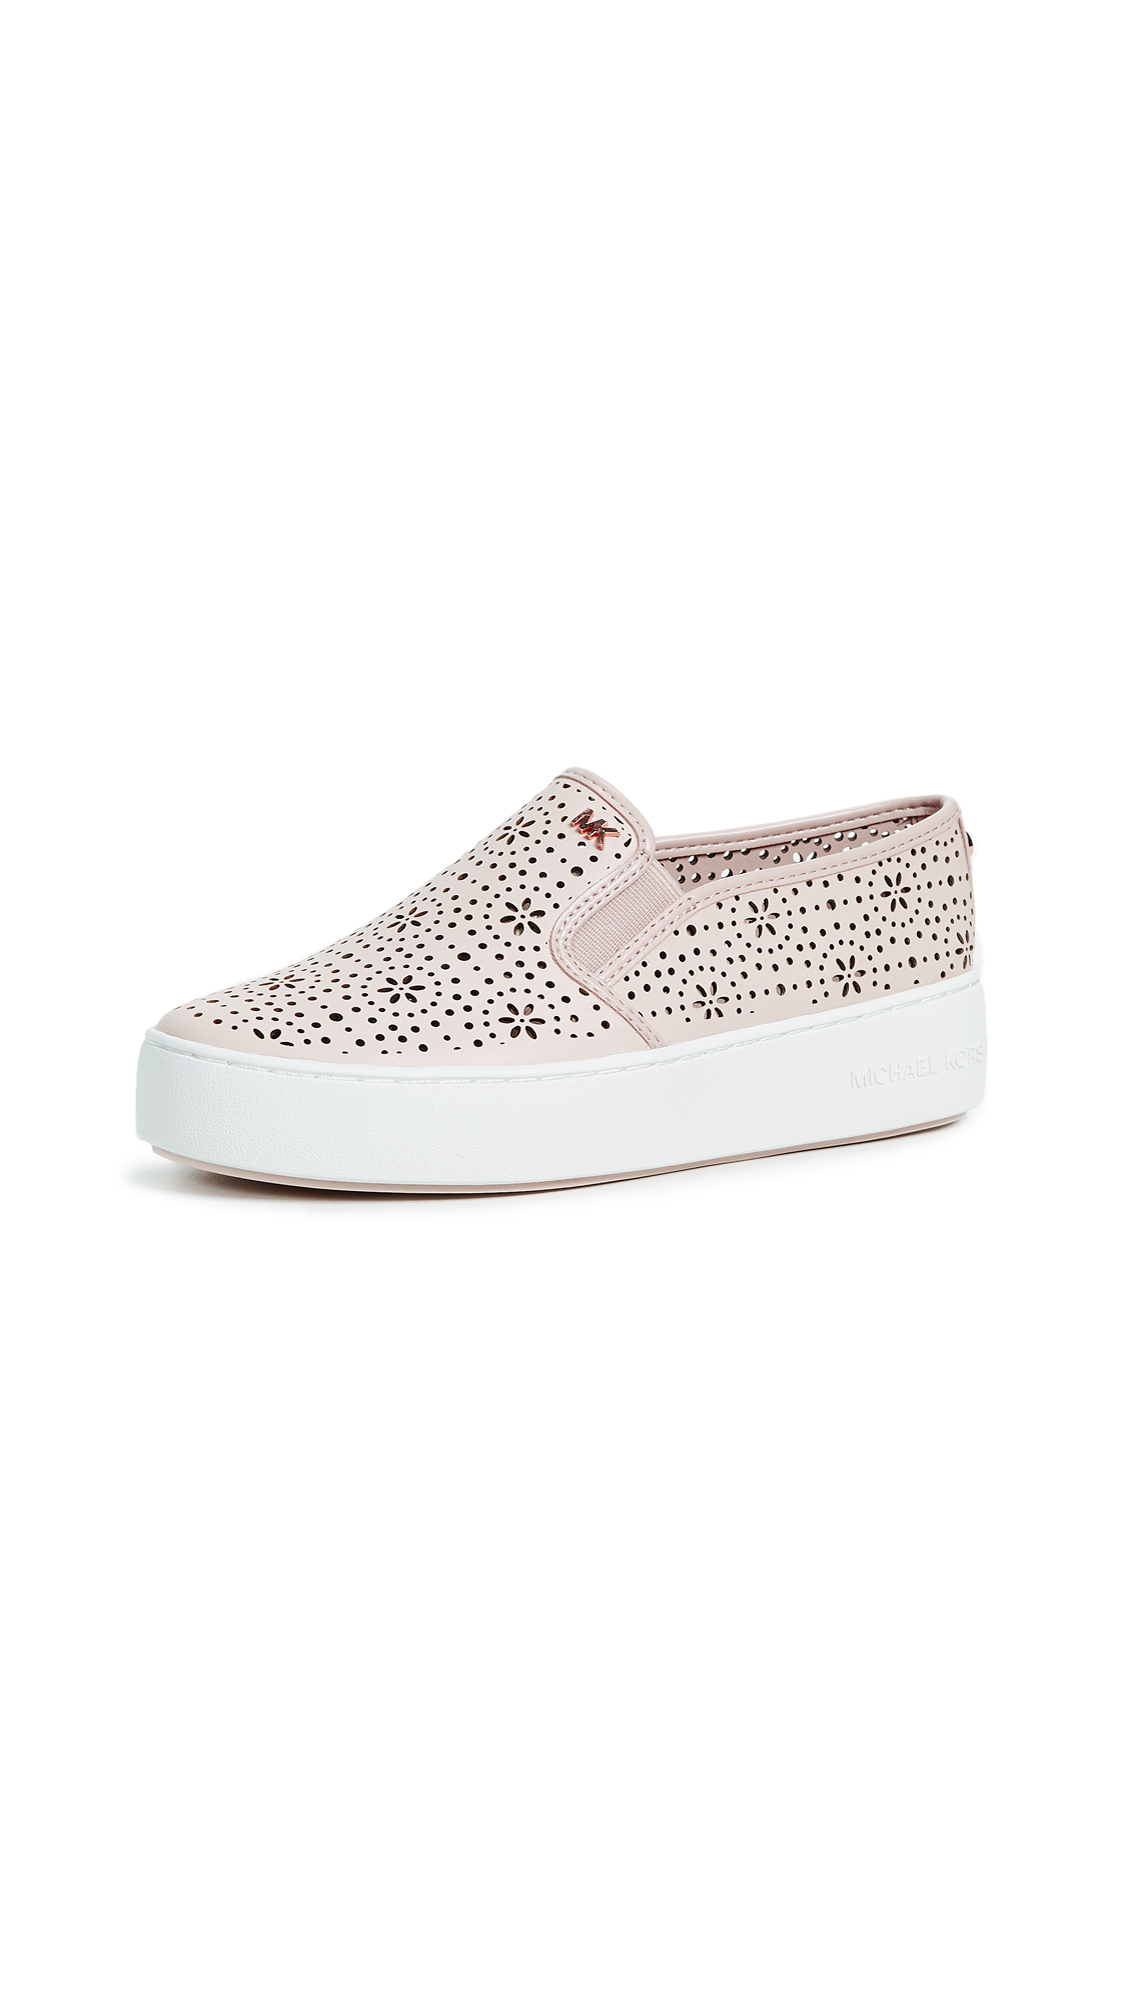 MICHAEL Michael Kors Trent Slip On Sneakers - Soft Pink